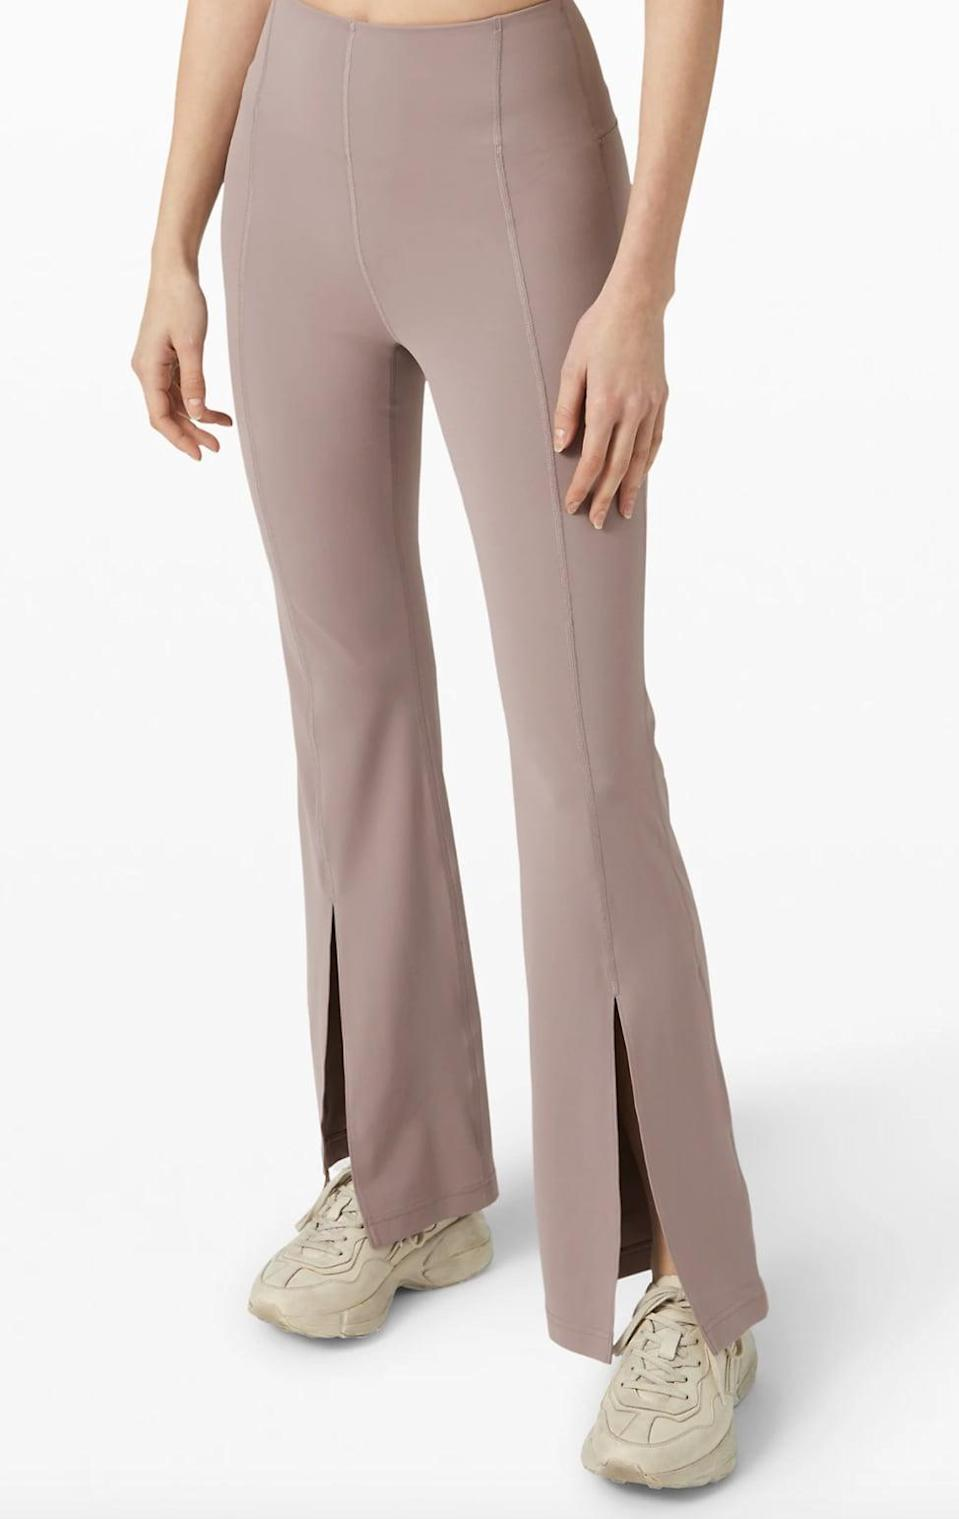 <p>The <span>Lululemon In the Groove Flare Pants</span> ($118) put a new twist on this athleisure staple with a striking slit at the bottom of each leg.</p>